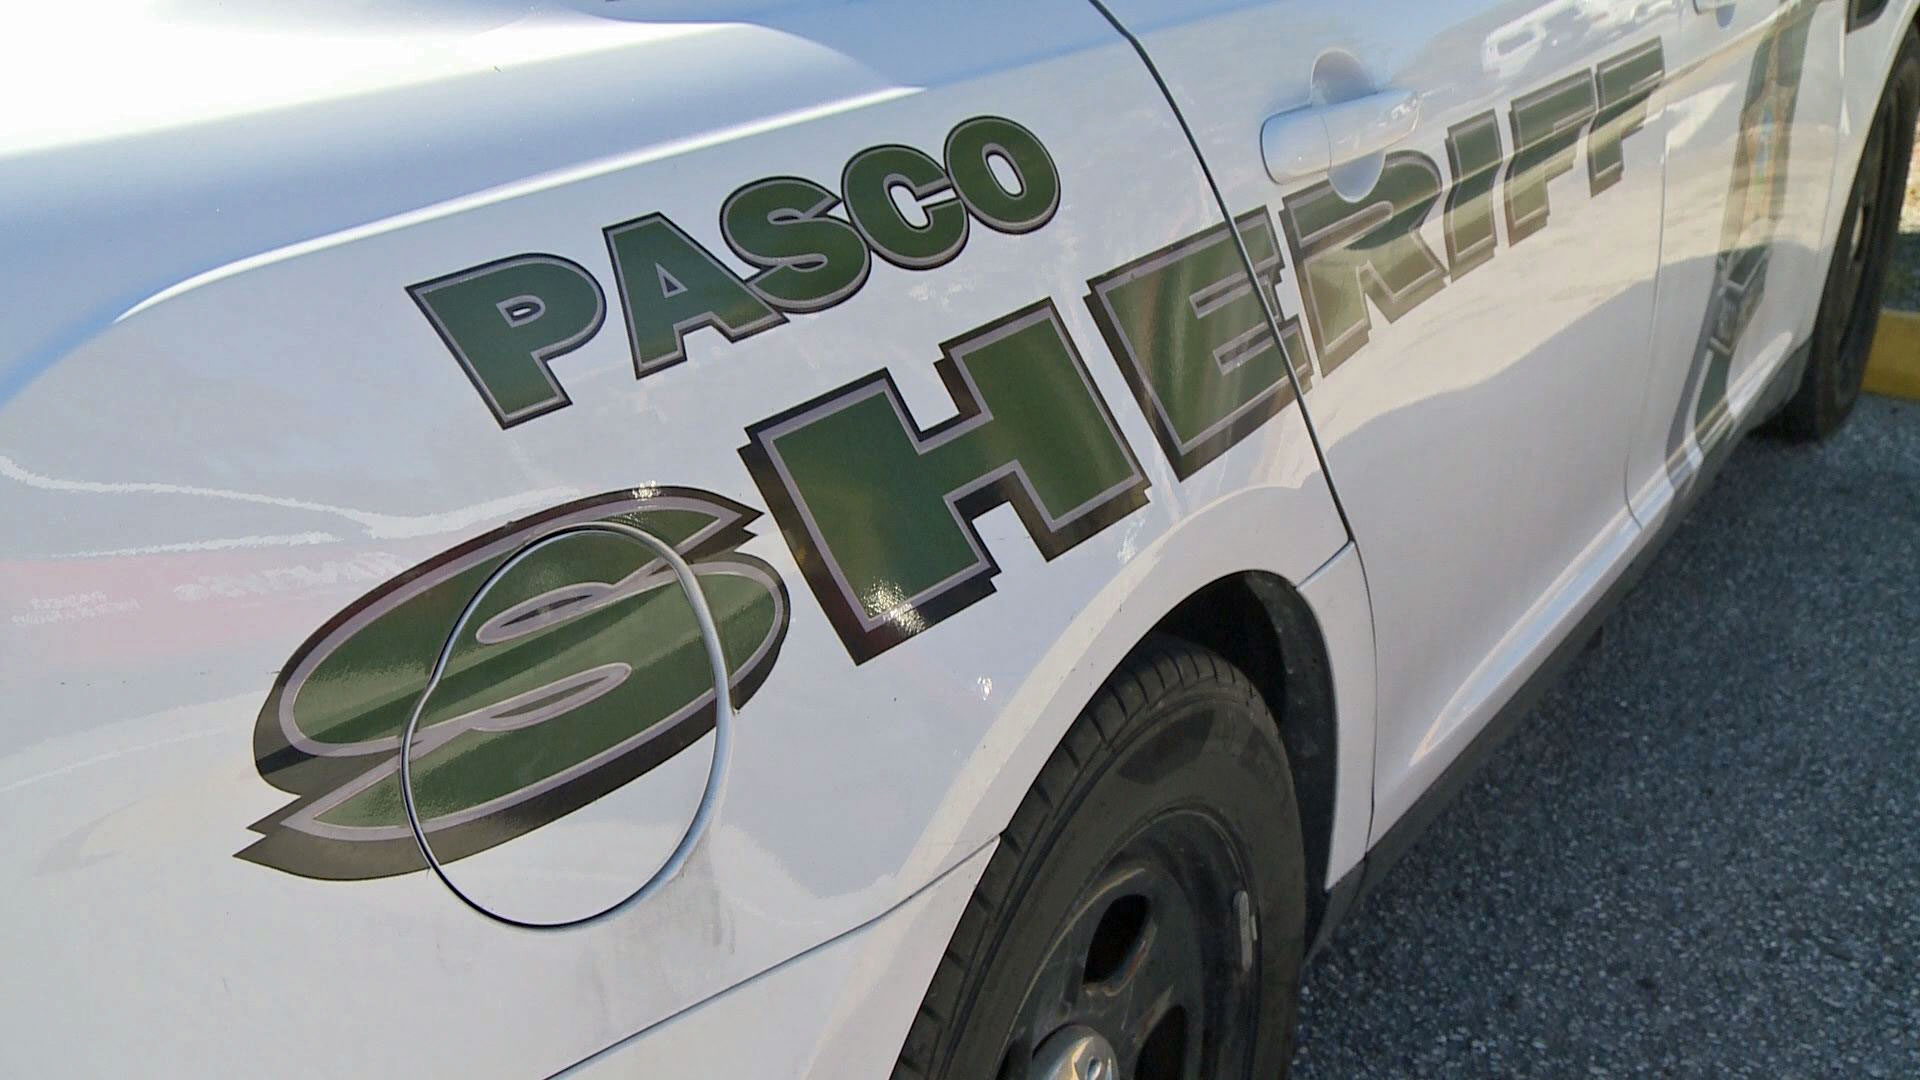 Pasco Deputy Fired For Allegedly Tar ing Suspect By Planting